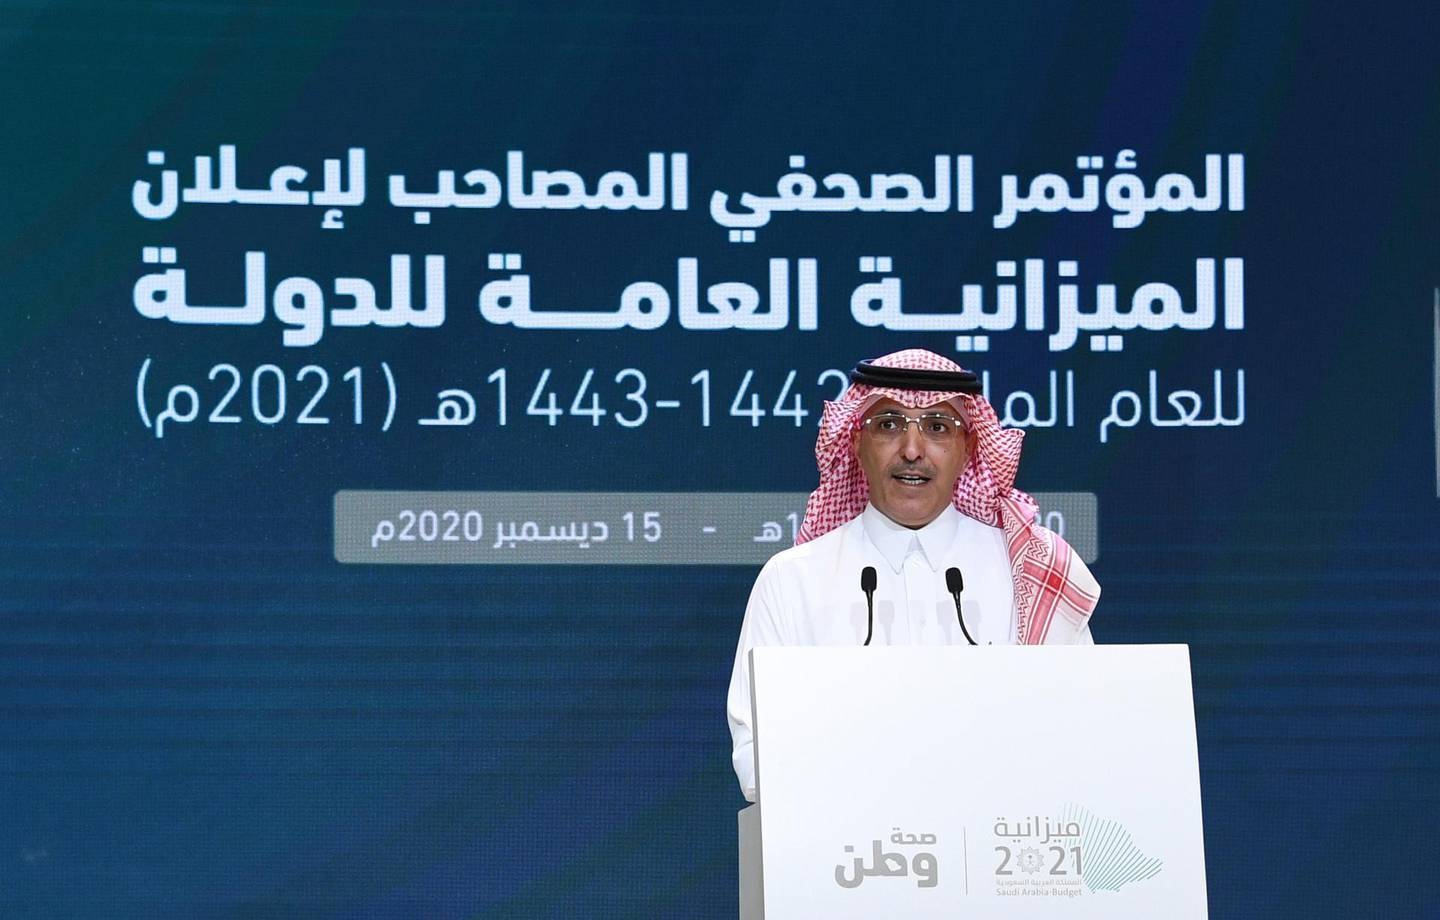 In this photo released by Saudi Press Agency, SPA, Saudi Finance Minister Mohammed al-Jadaan, speaks during a press conference to announce Saudi Arabia's annual budget, in Riyadh, Saudi Arabia, late Tuesday, Dec. 15, 2020. (Saudi Press Agency via AP)